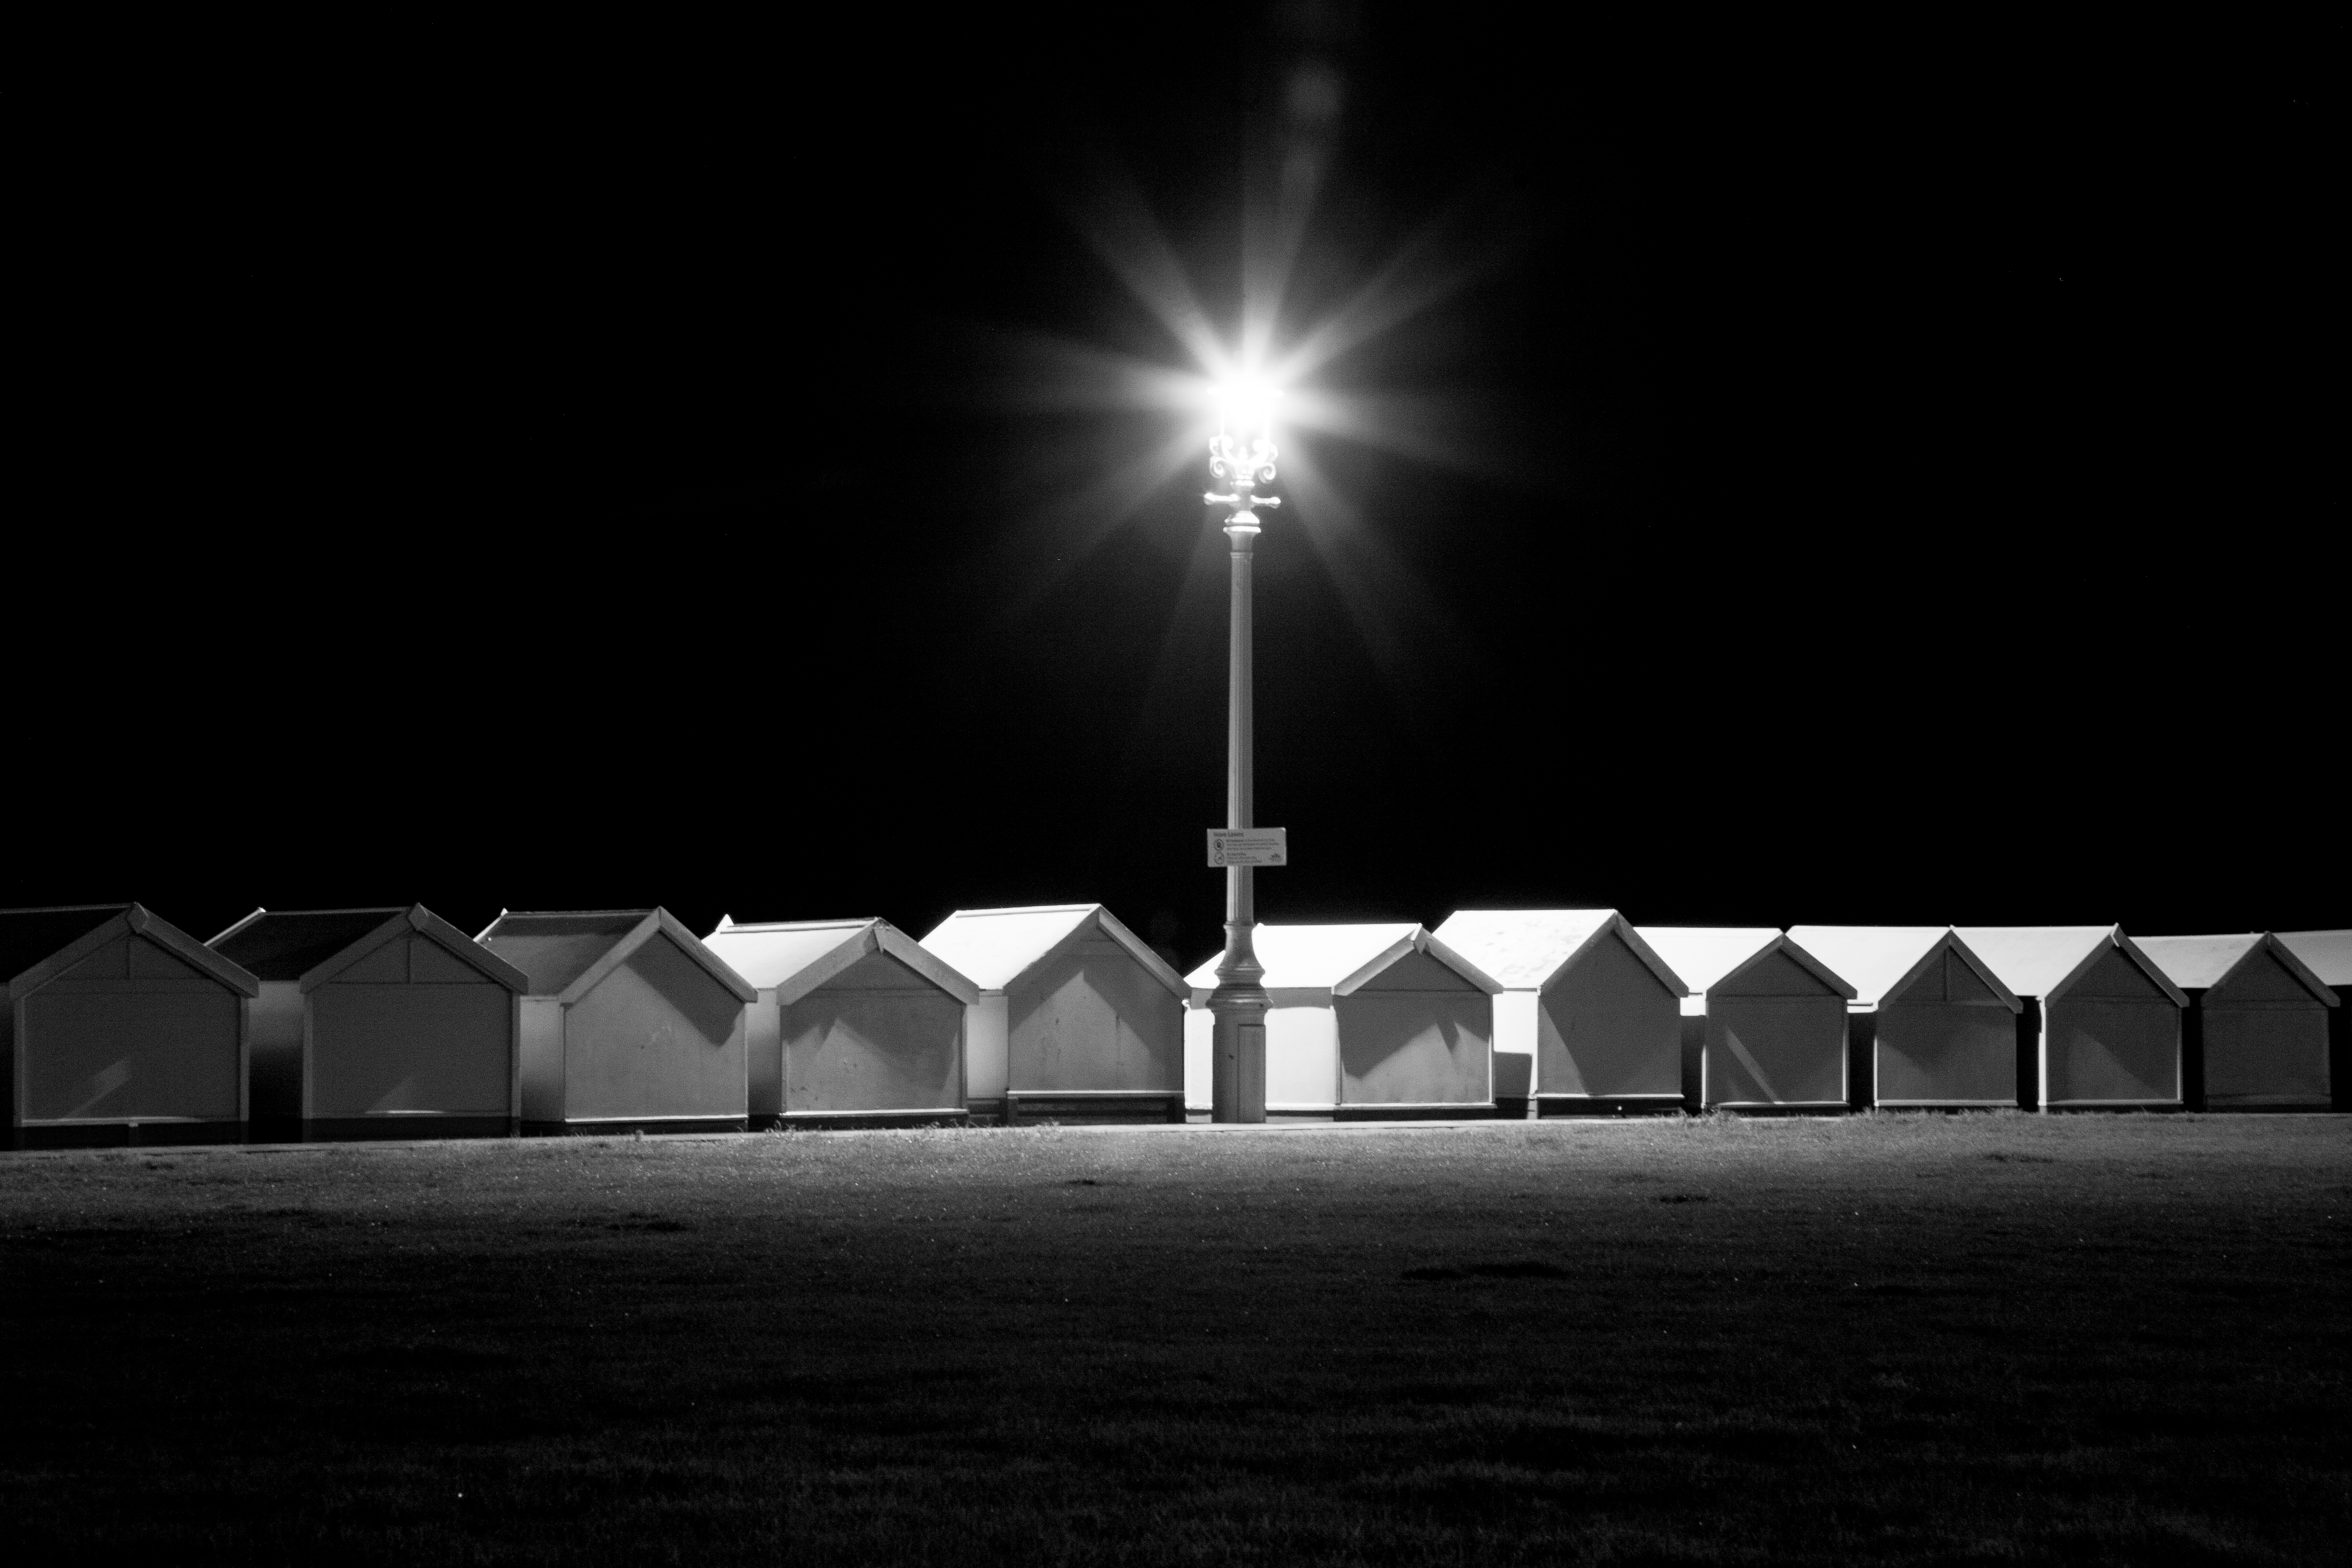 Beach Huts at Night, Hove